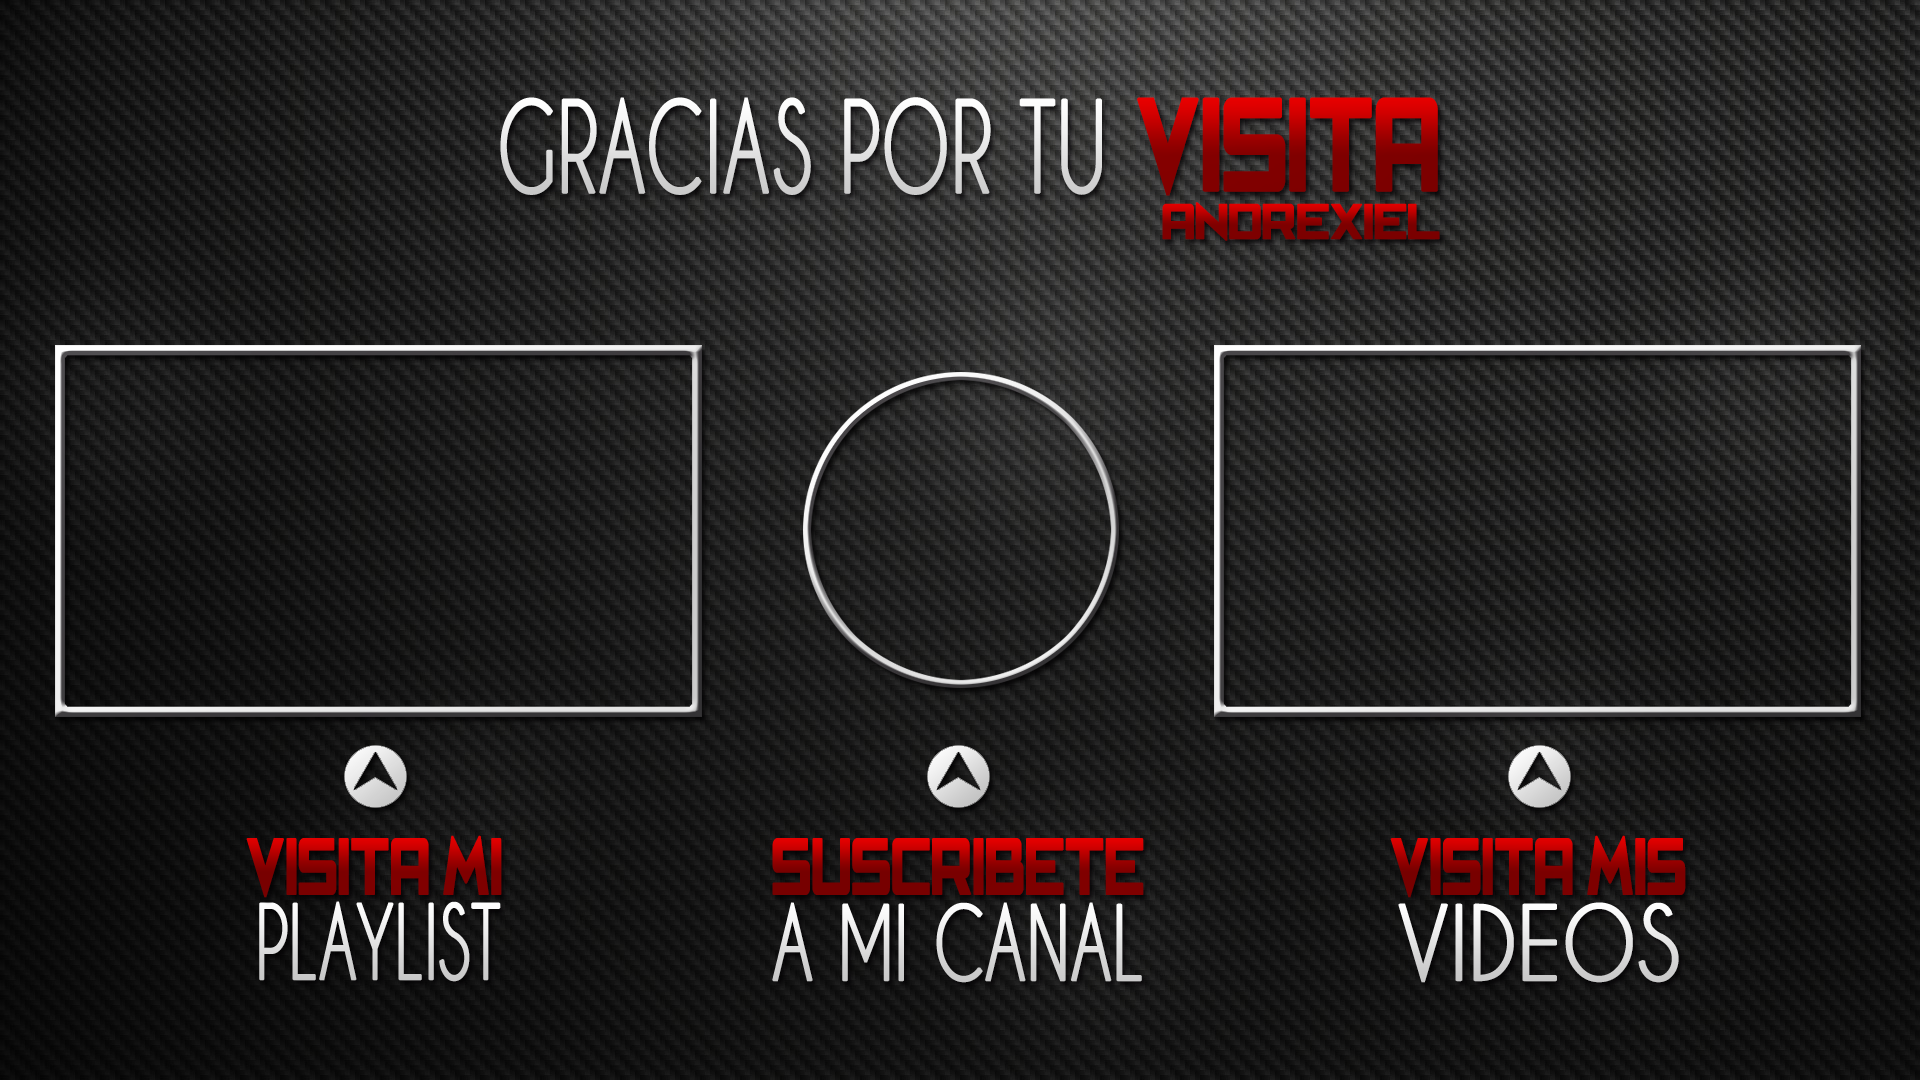 Free outro template by andrexiel on deviantart for Free outro template